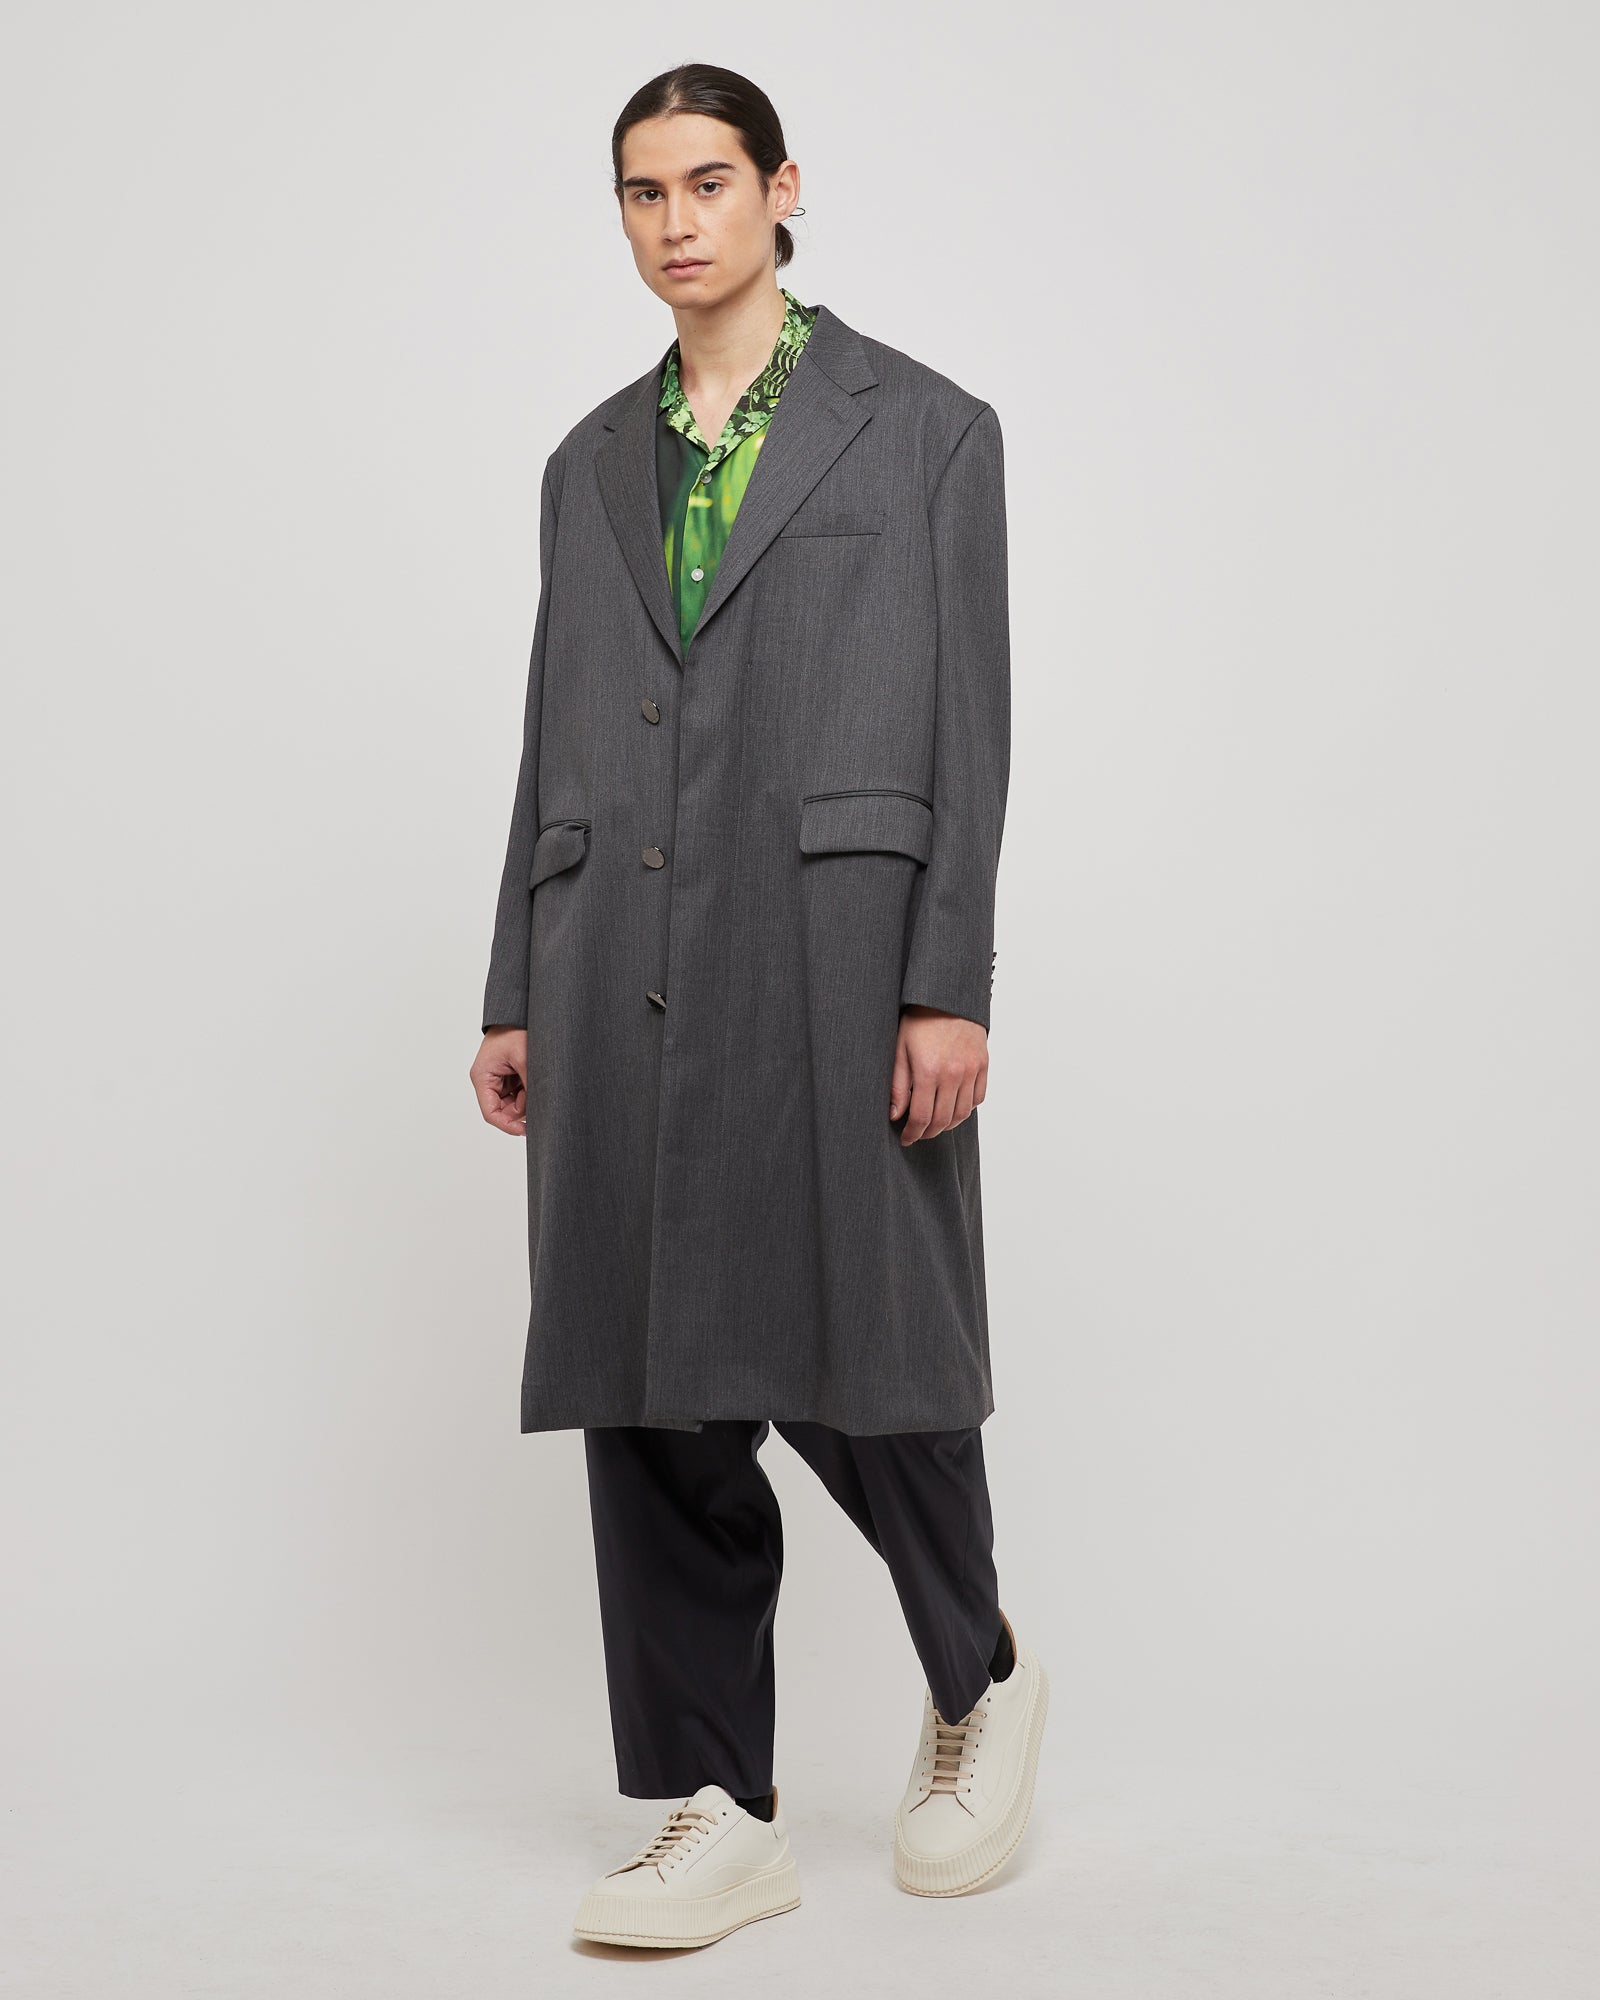 Trench Coat in Charcoal Heather